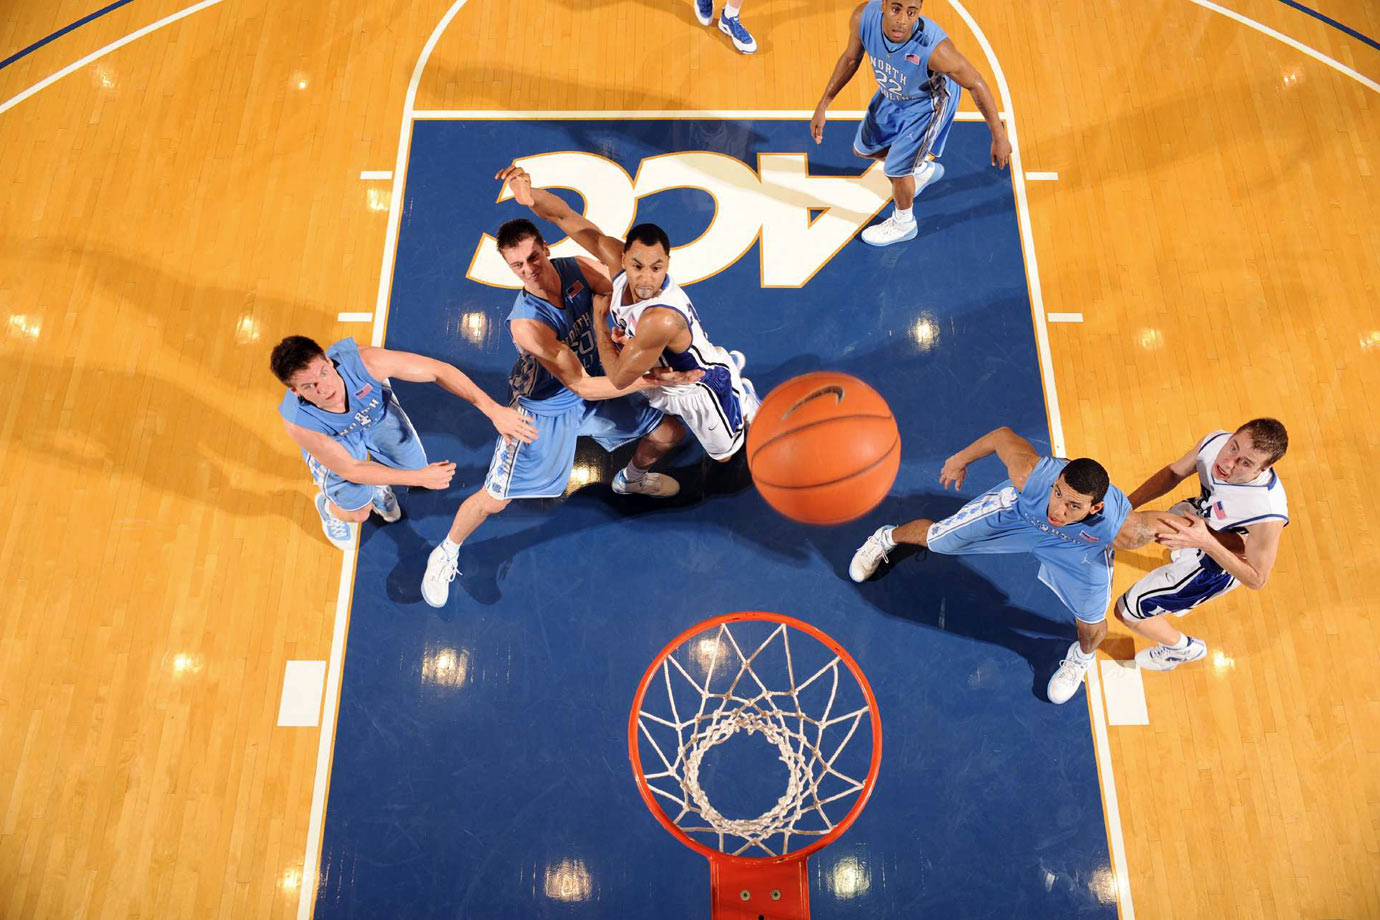 Tyler Hansbrough and Gerald Henderson